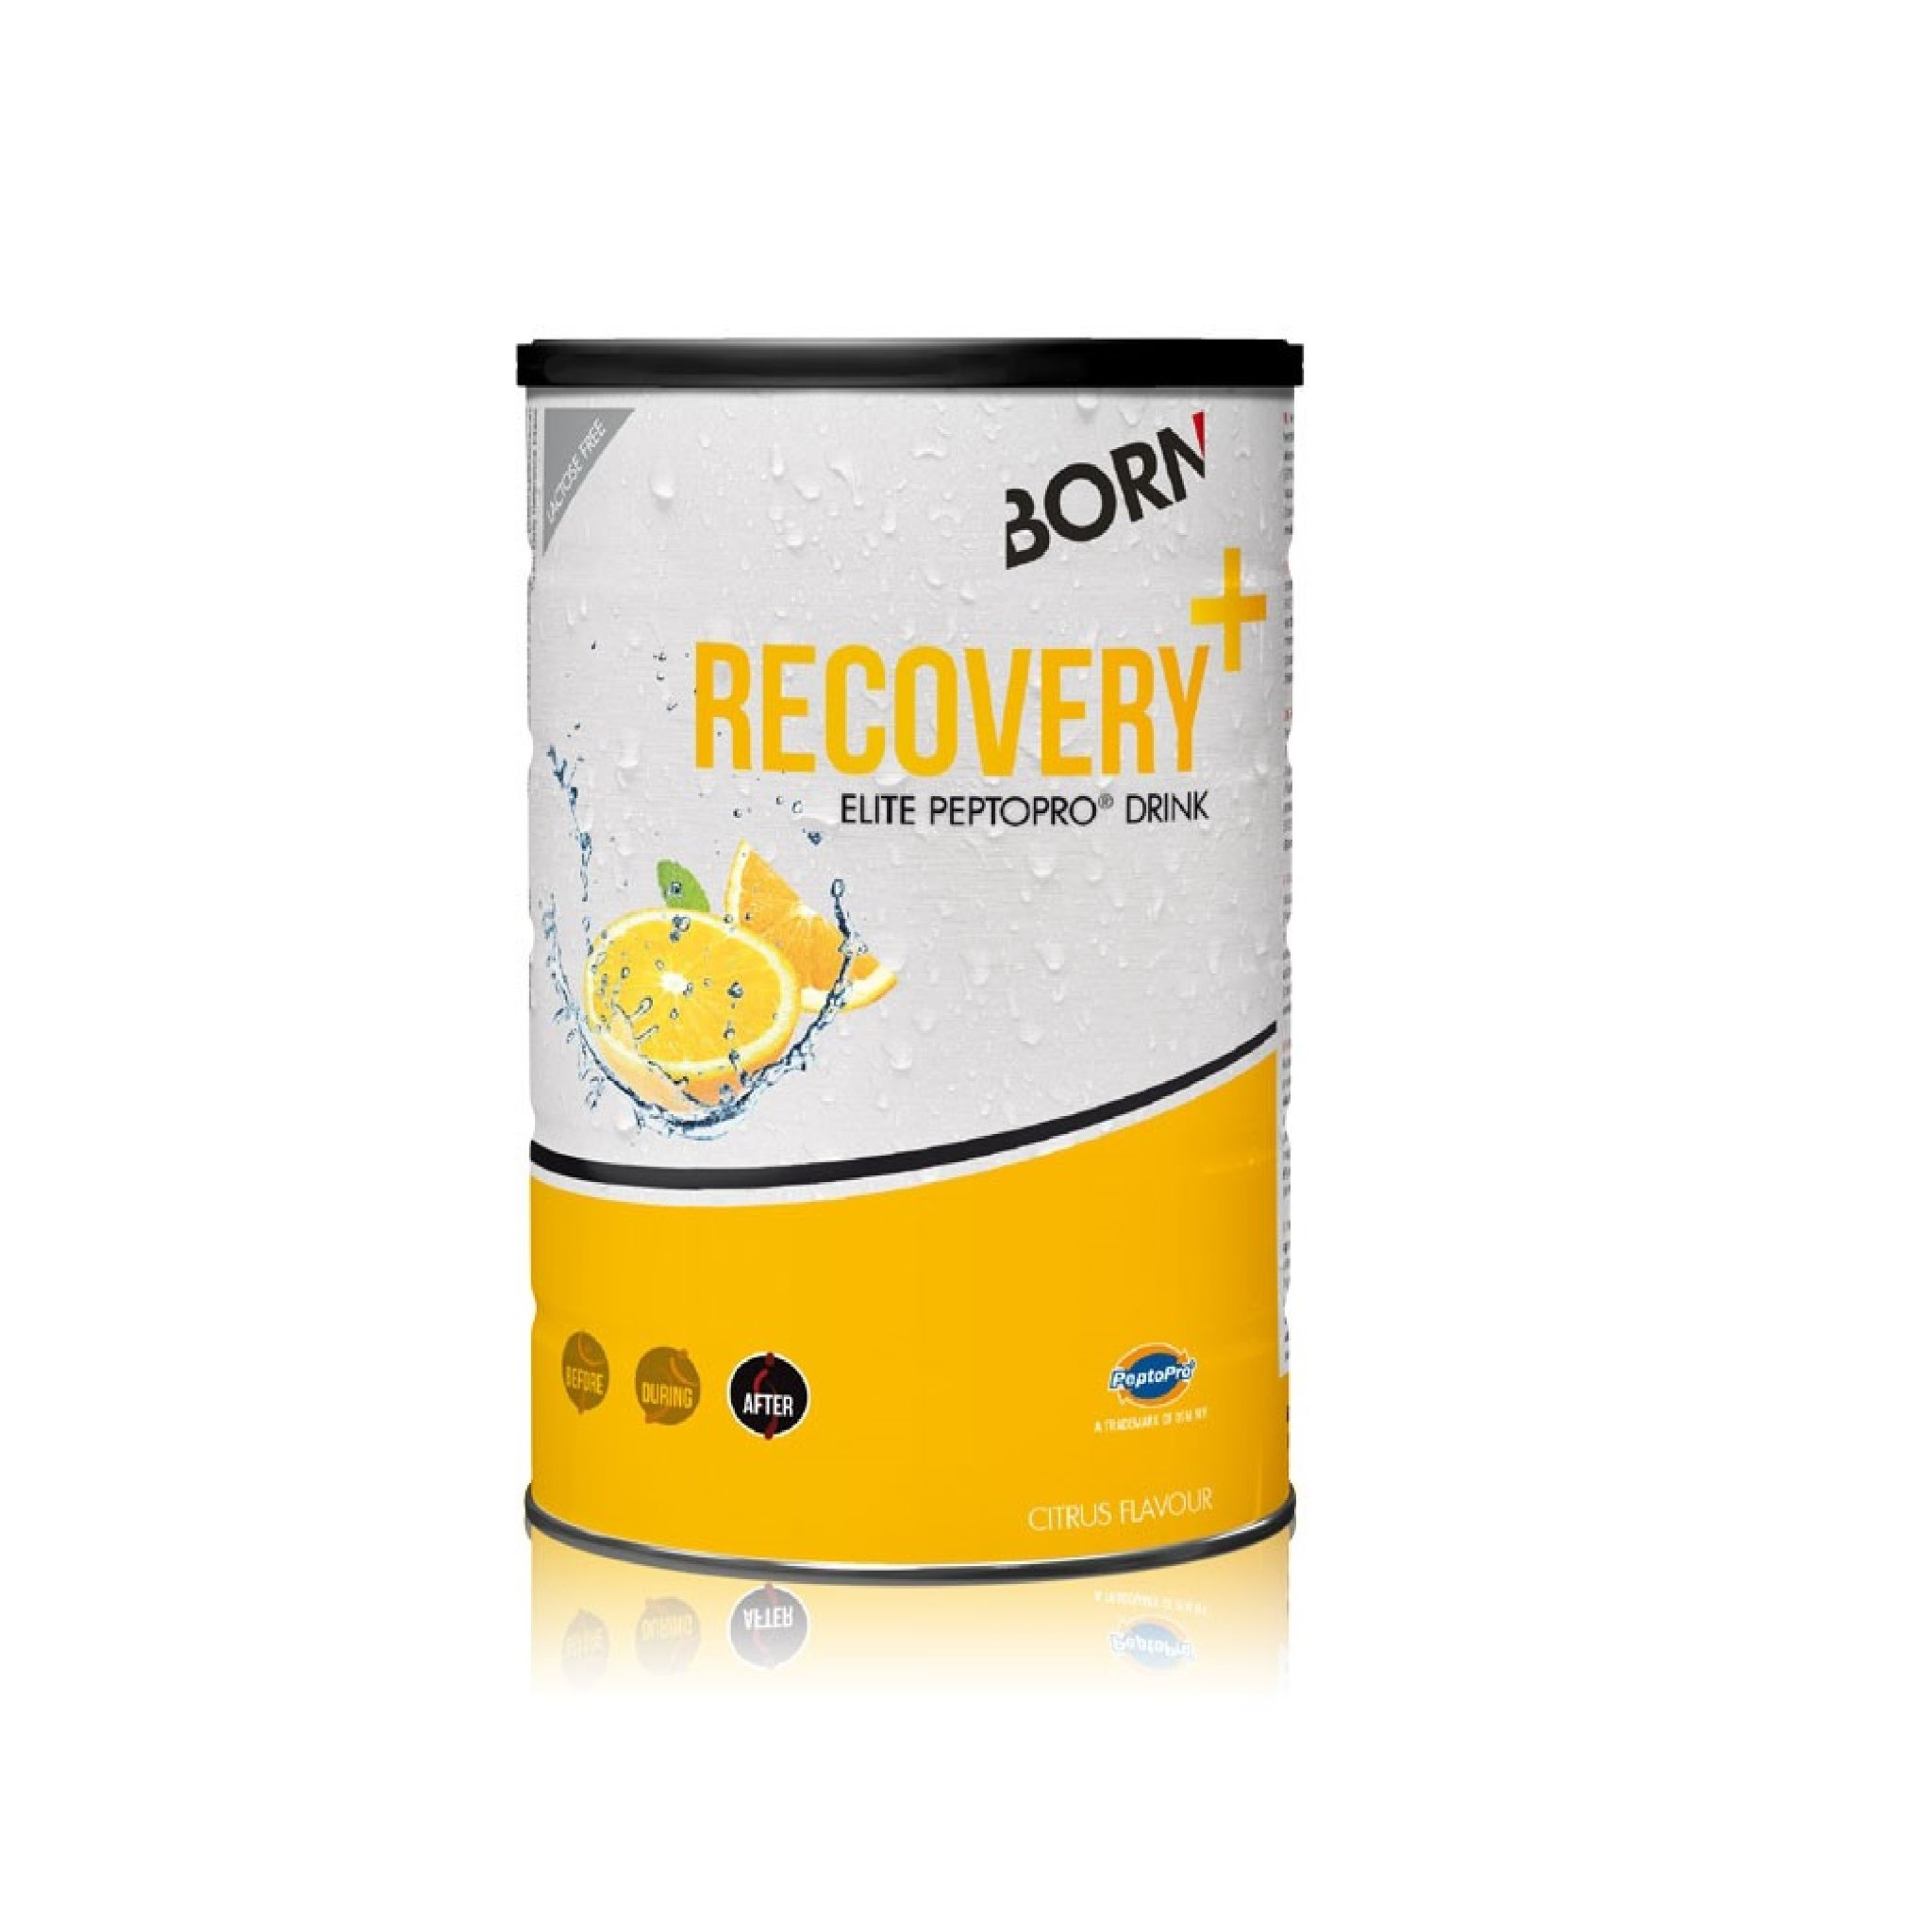 BORN RECOVERY+ Can (450g Powder)